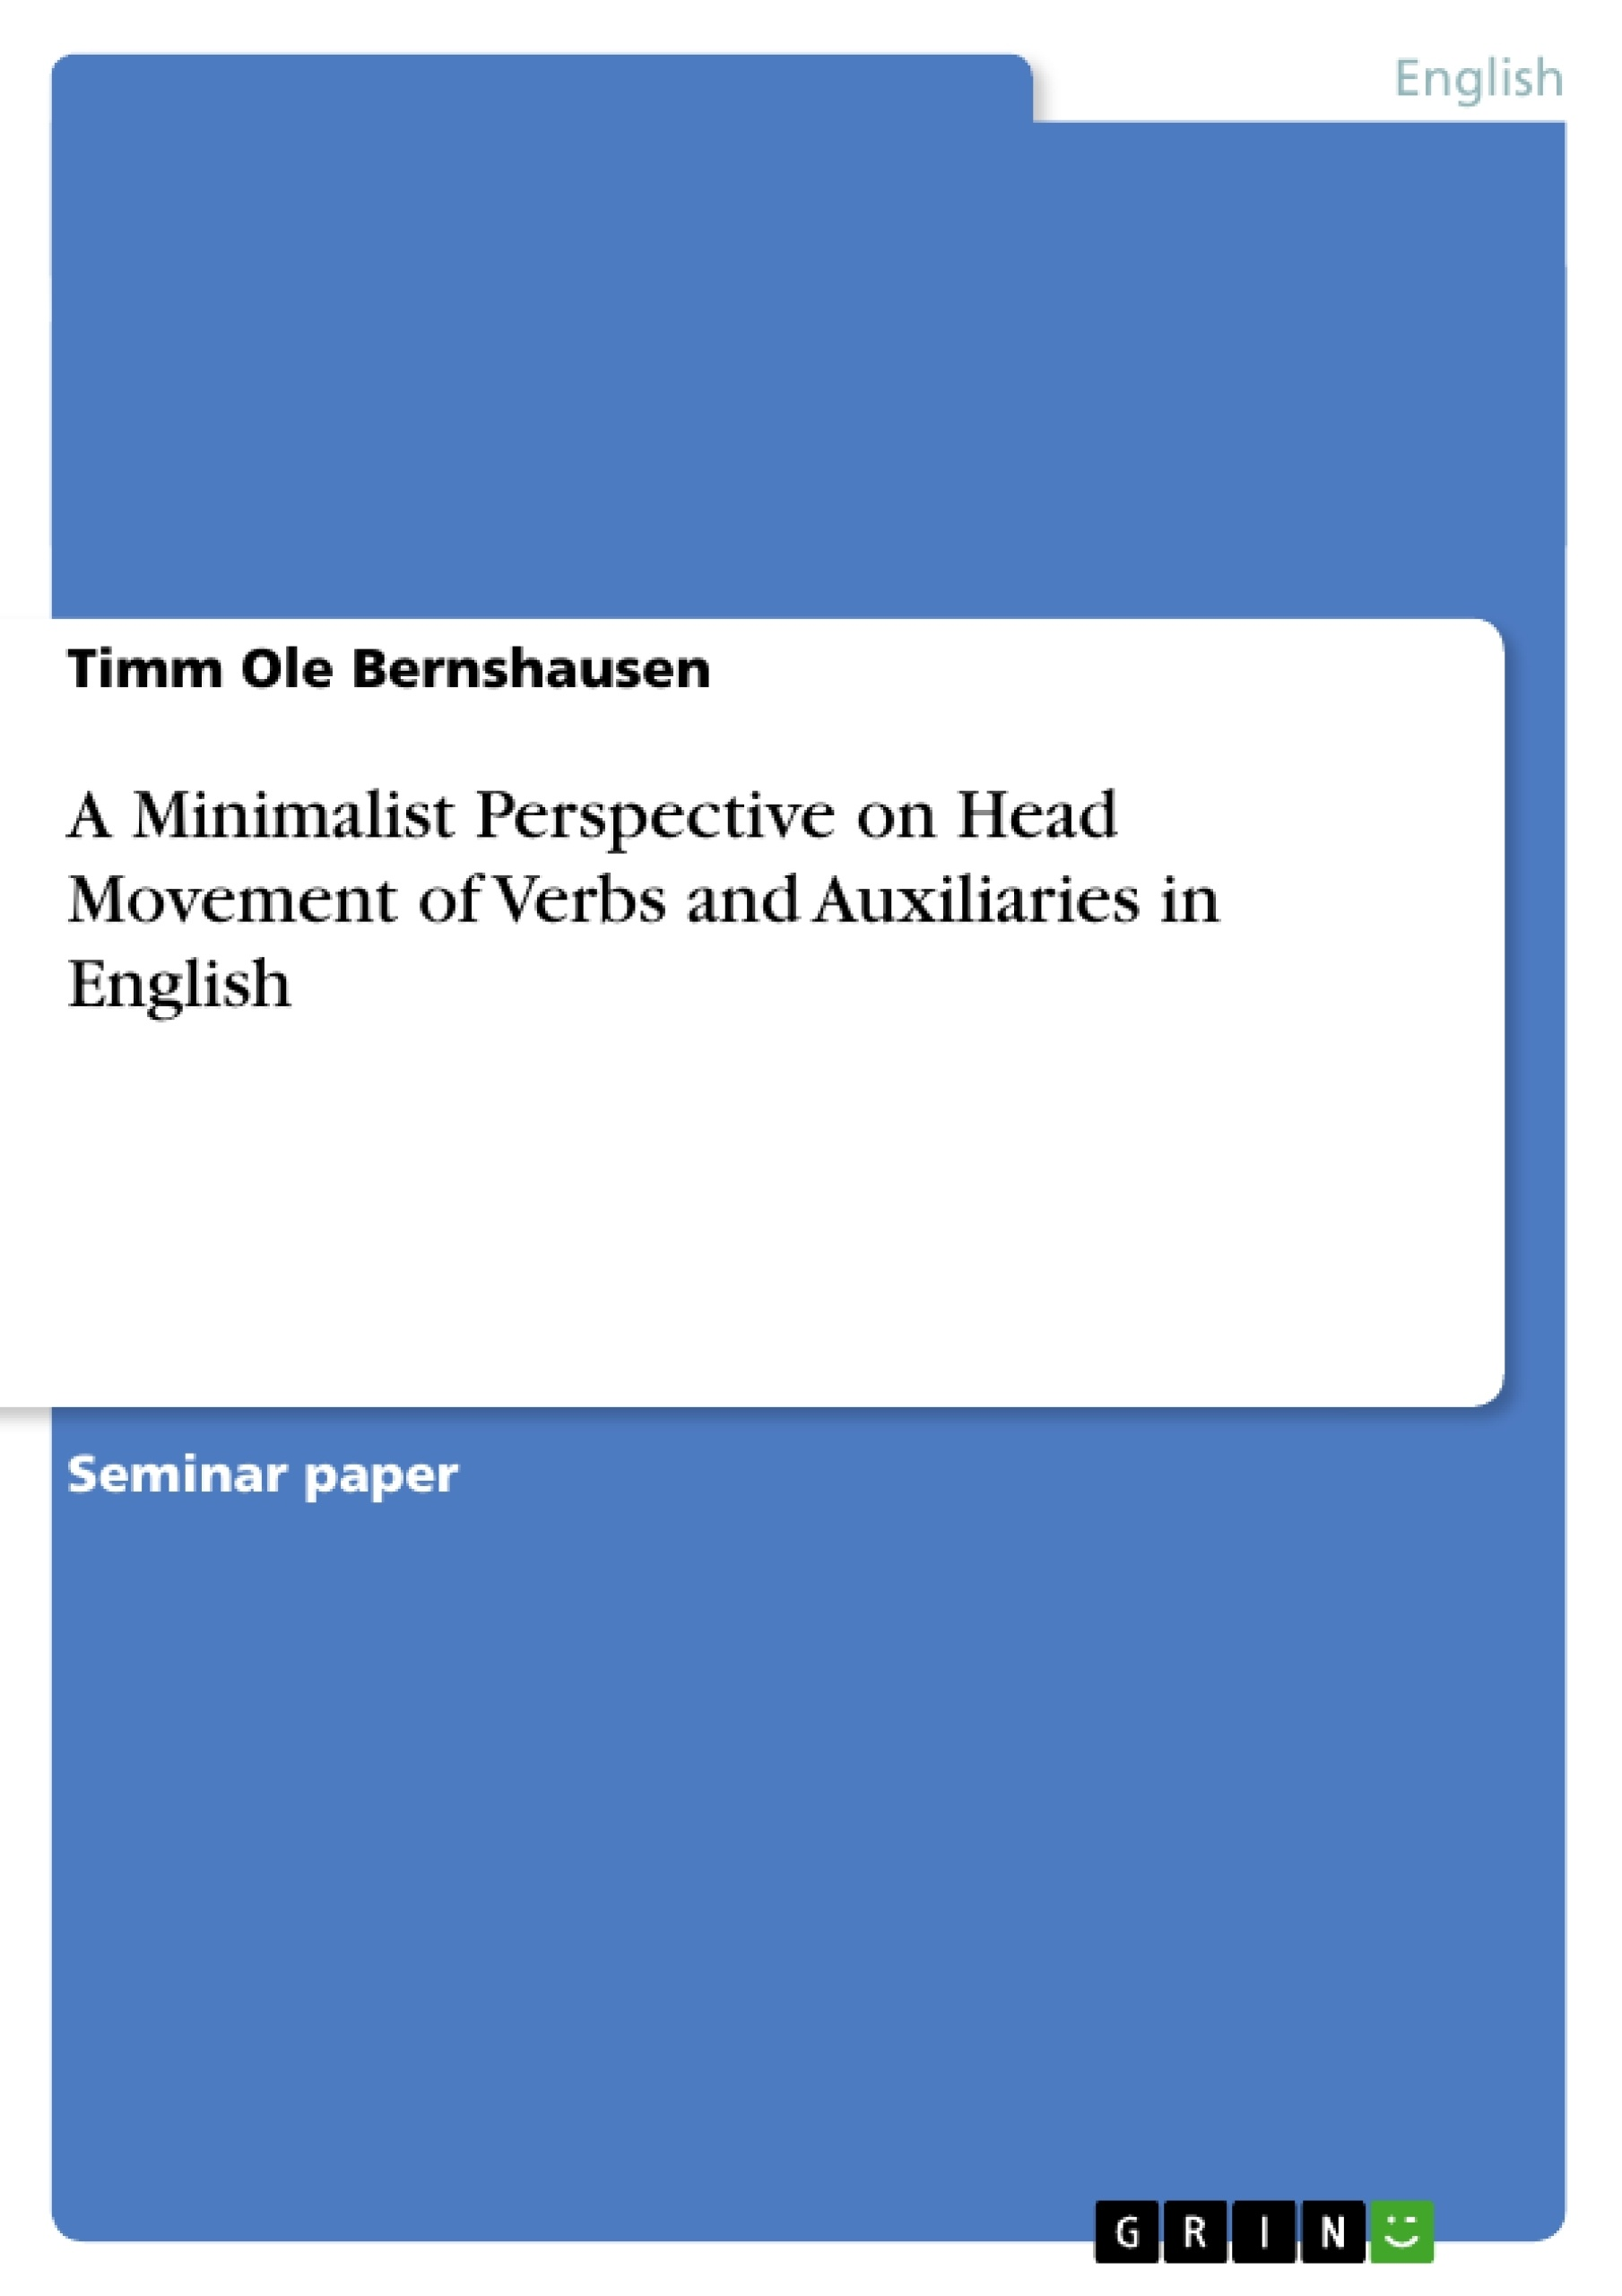 Title: A Minimalist Perspective on Head Movement of Verbs and Auxiliaries in English